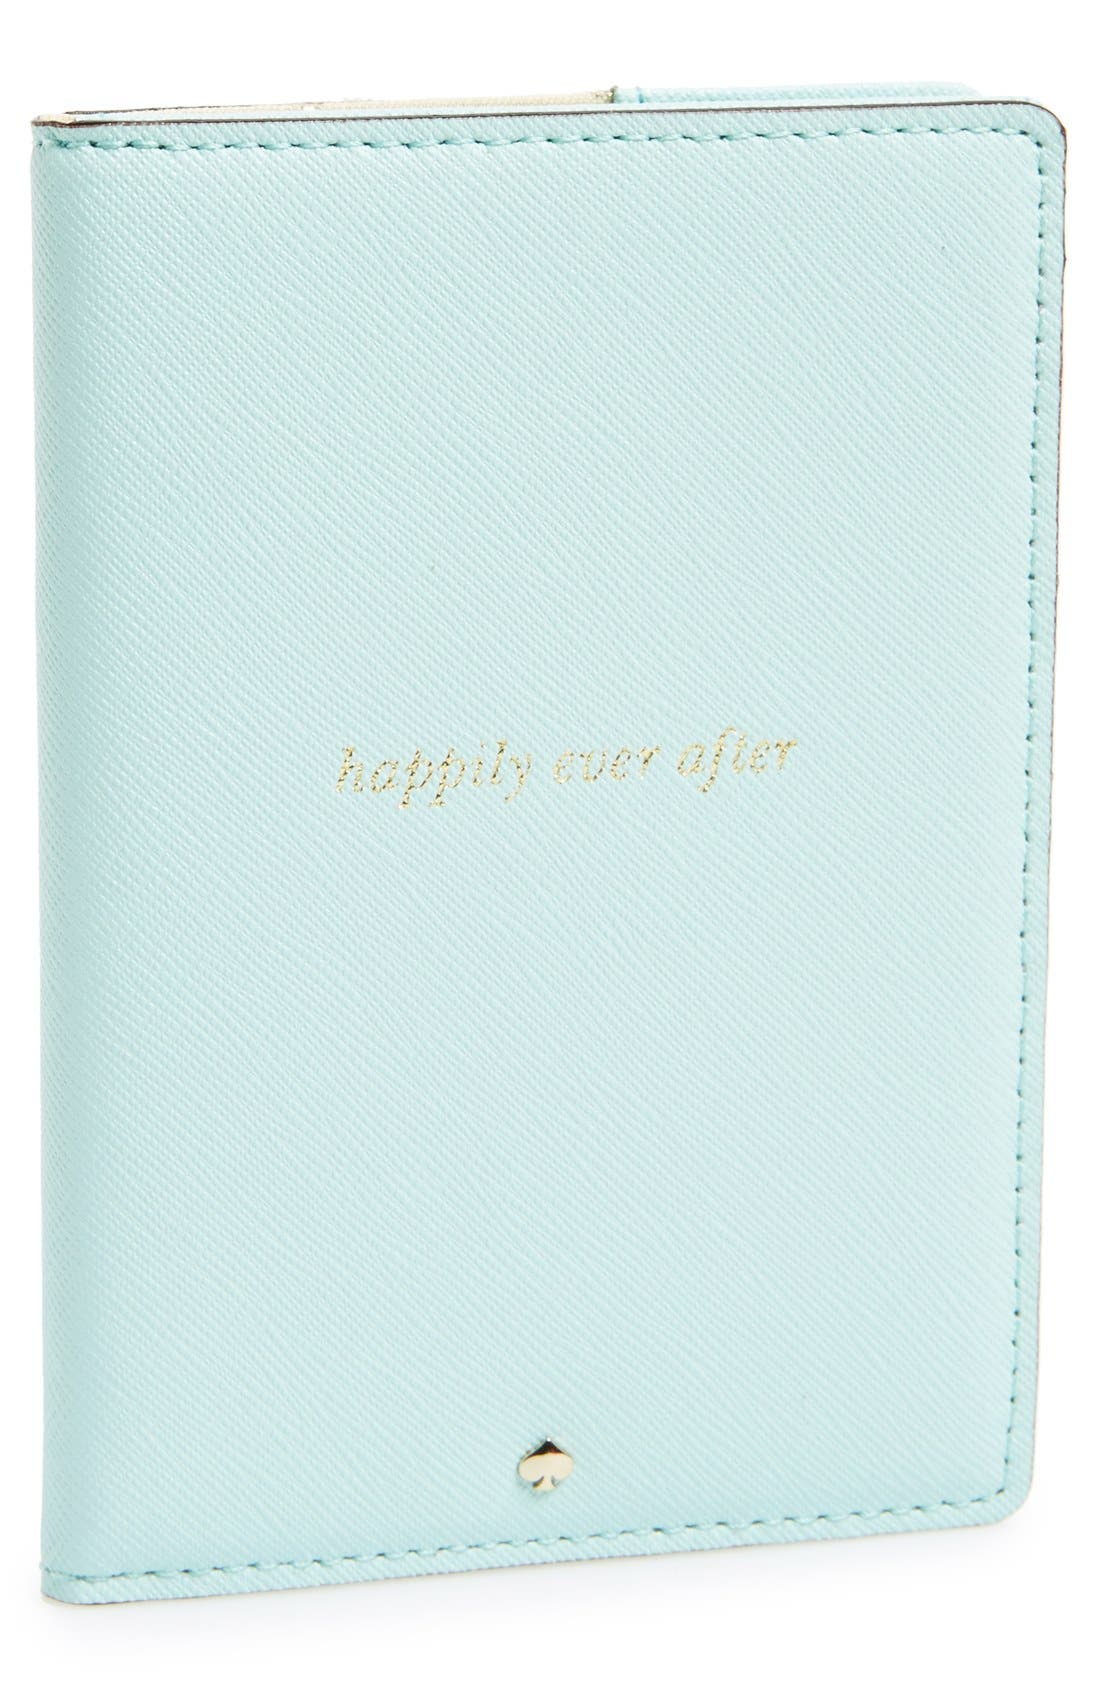 Alternate Image 1 Selected - kate spade new york 'wedding belles - happily ever after' passport holder